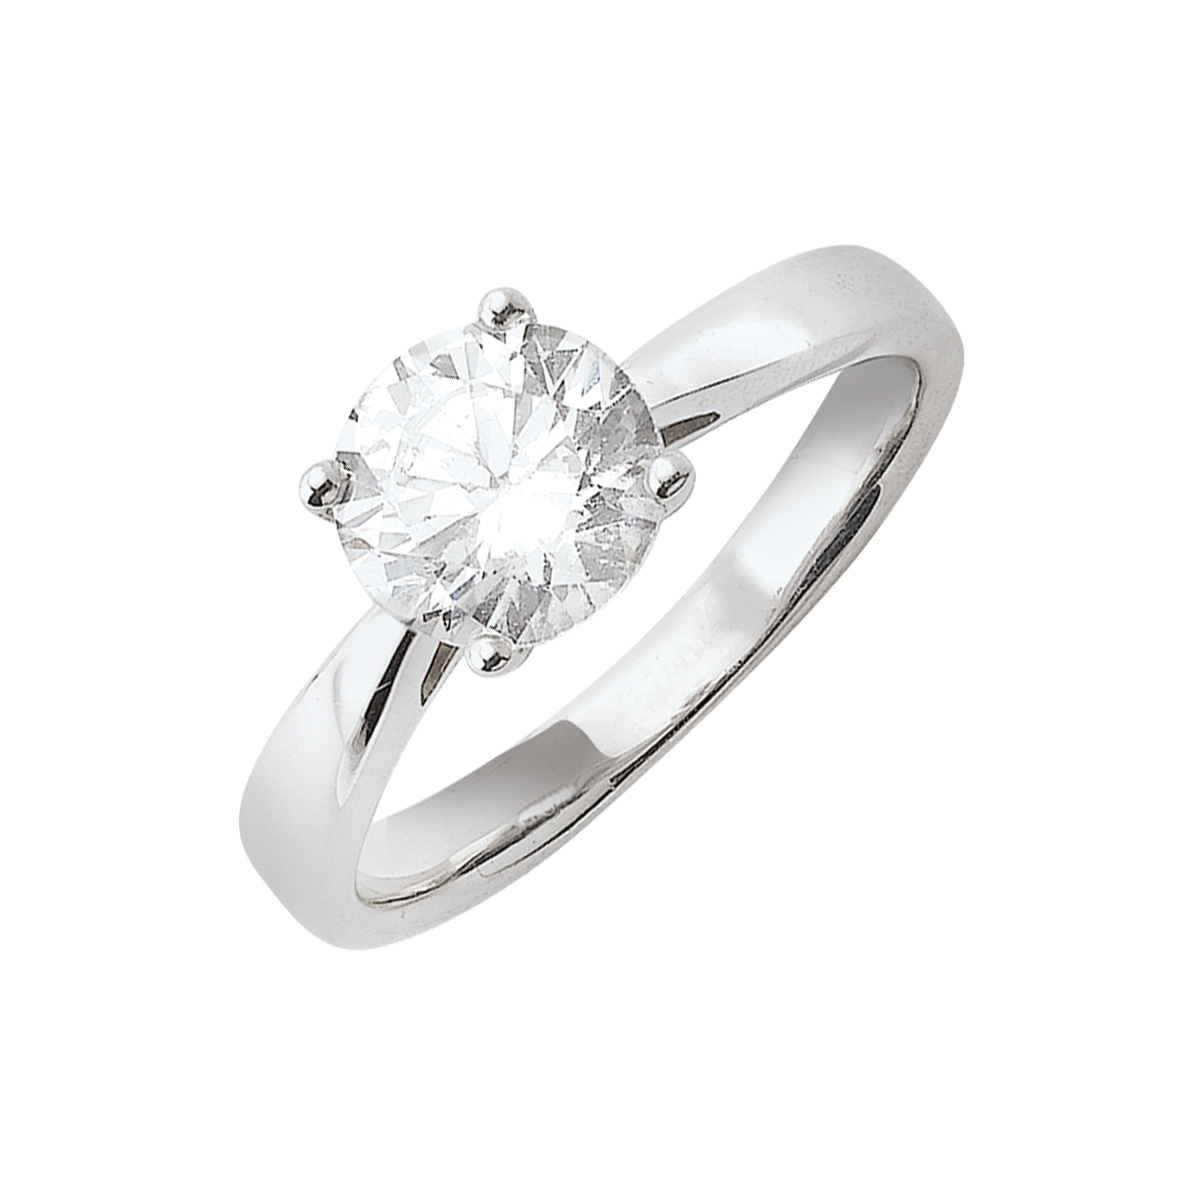 Solitaire or blanc - Diamant synthétique 1,50 carat